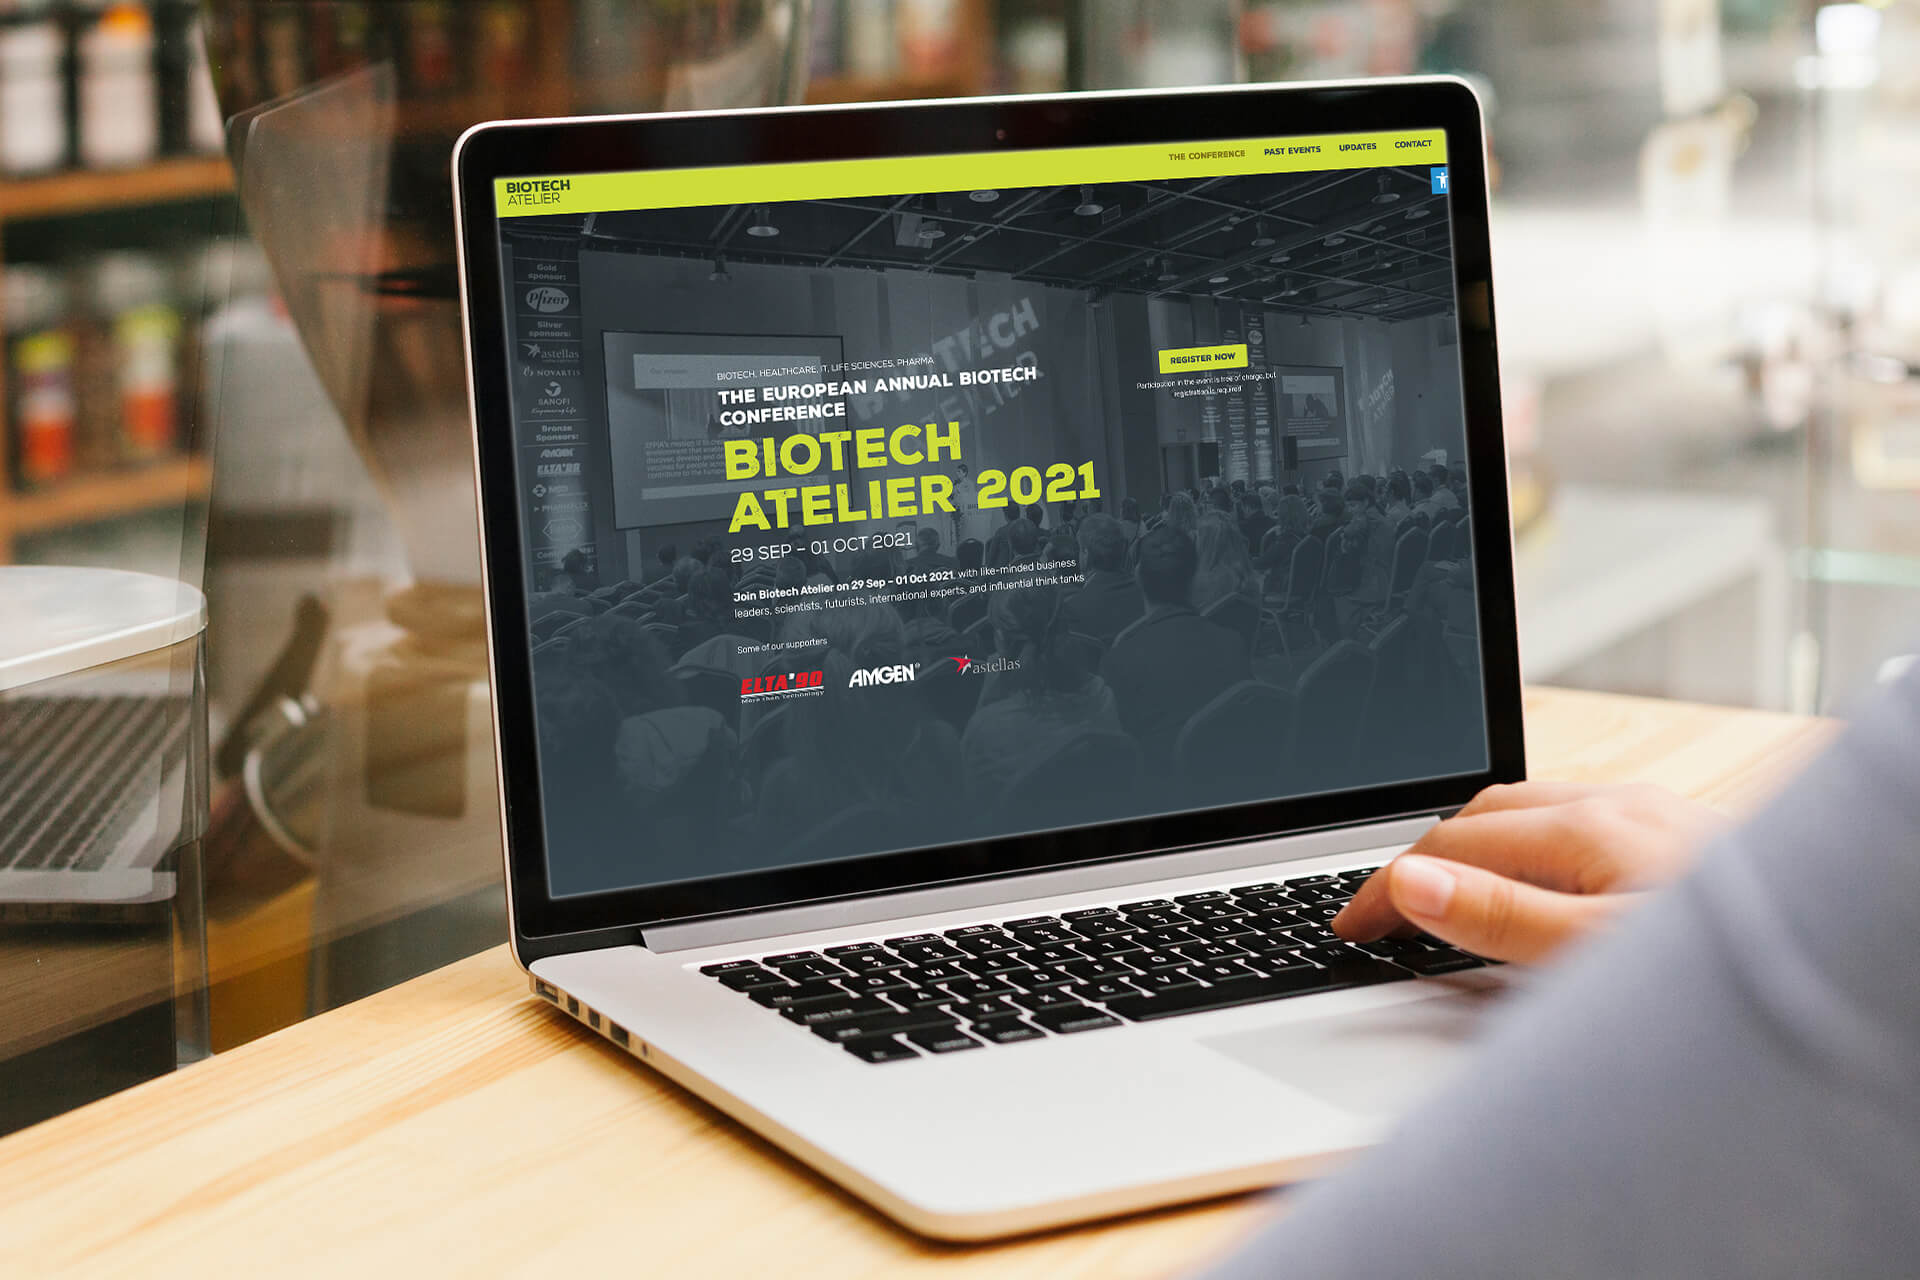 Computer screen showing Biotech Atelier's landing page for 2021